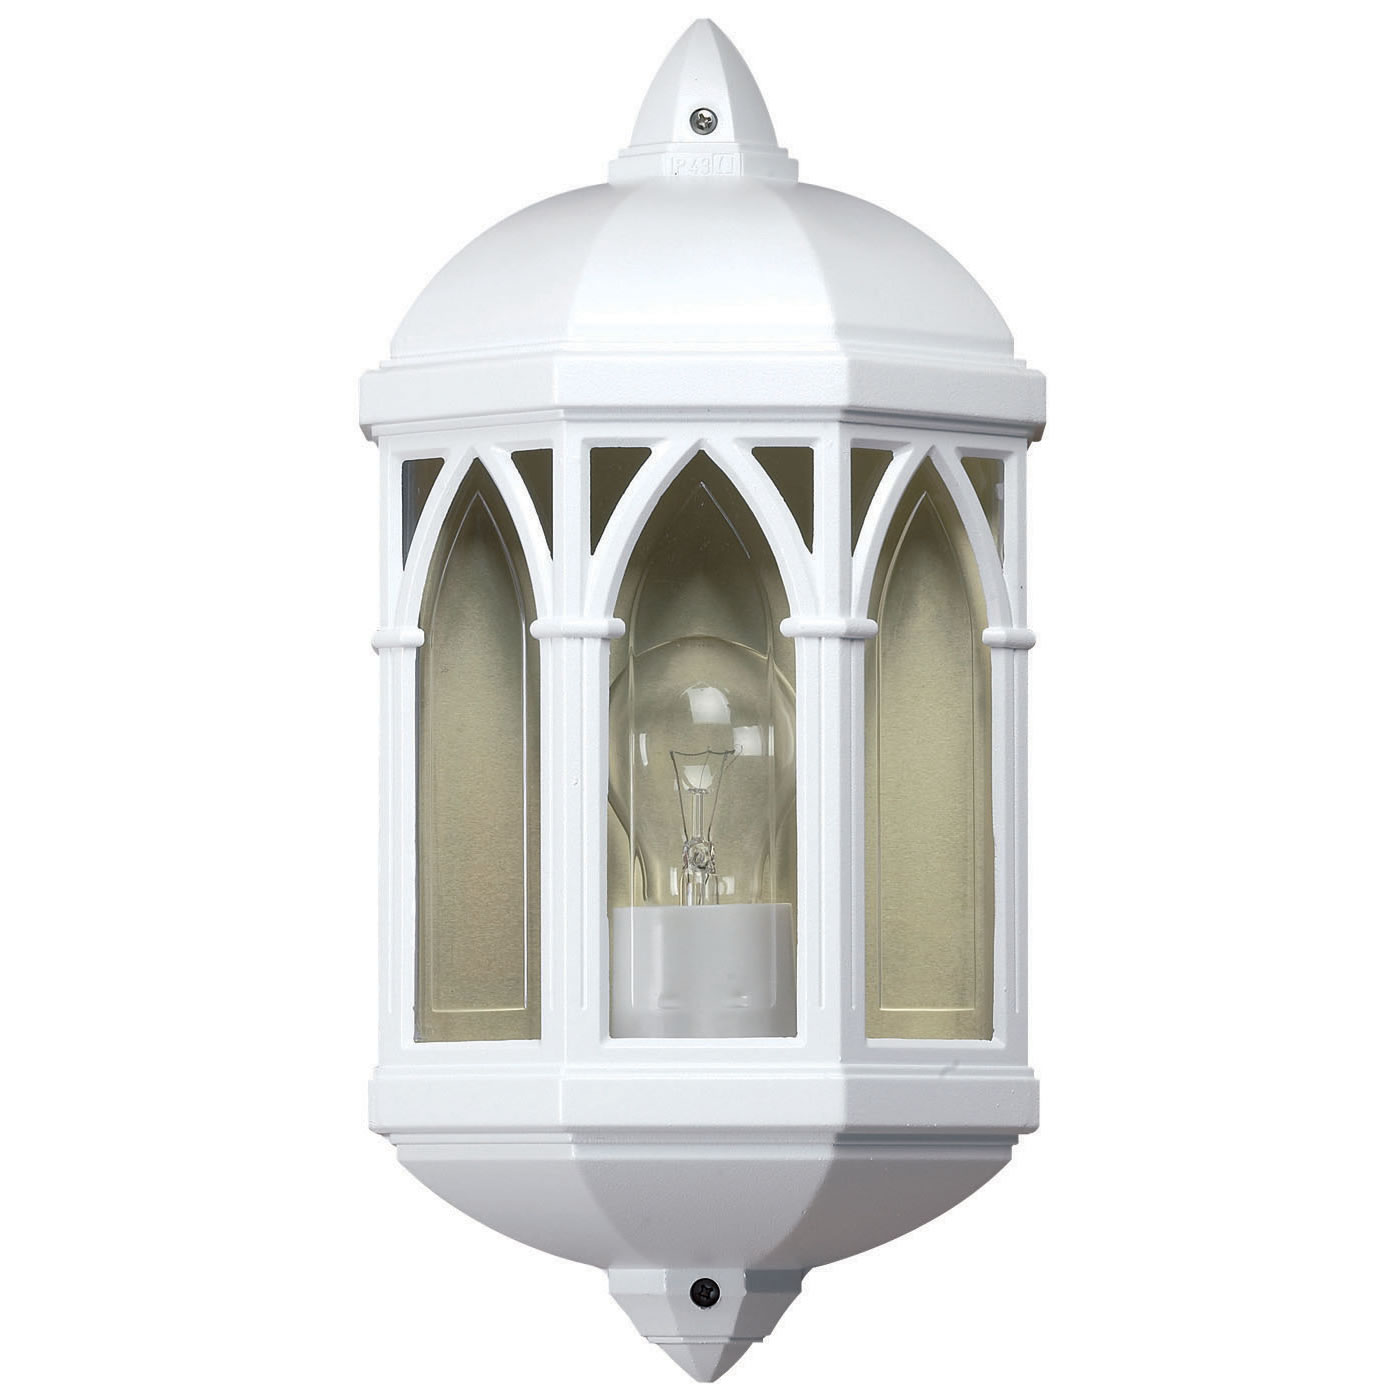 10 benefits of white outdoor wall light fixtures warisan for Outdoor porch light fixtures